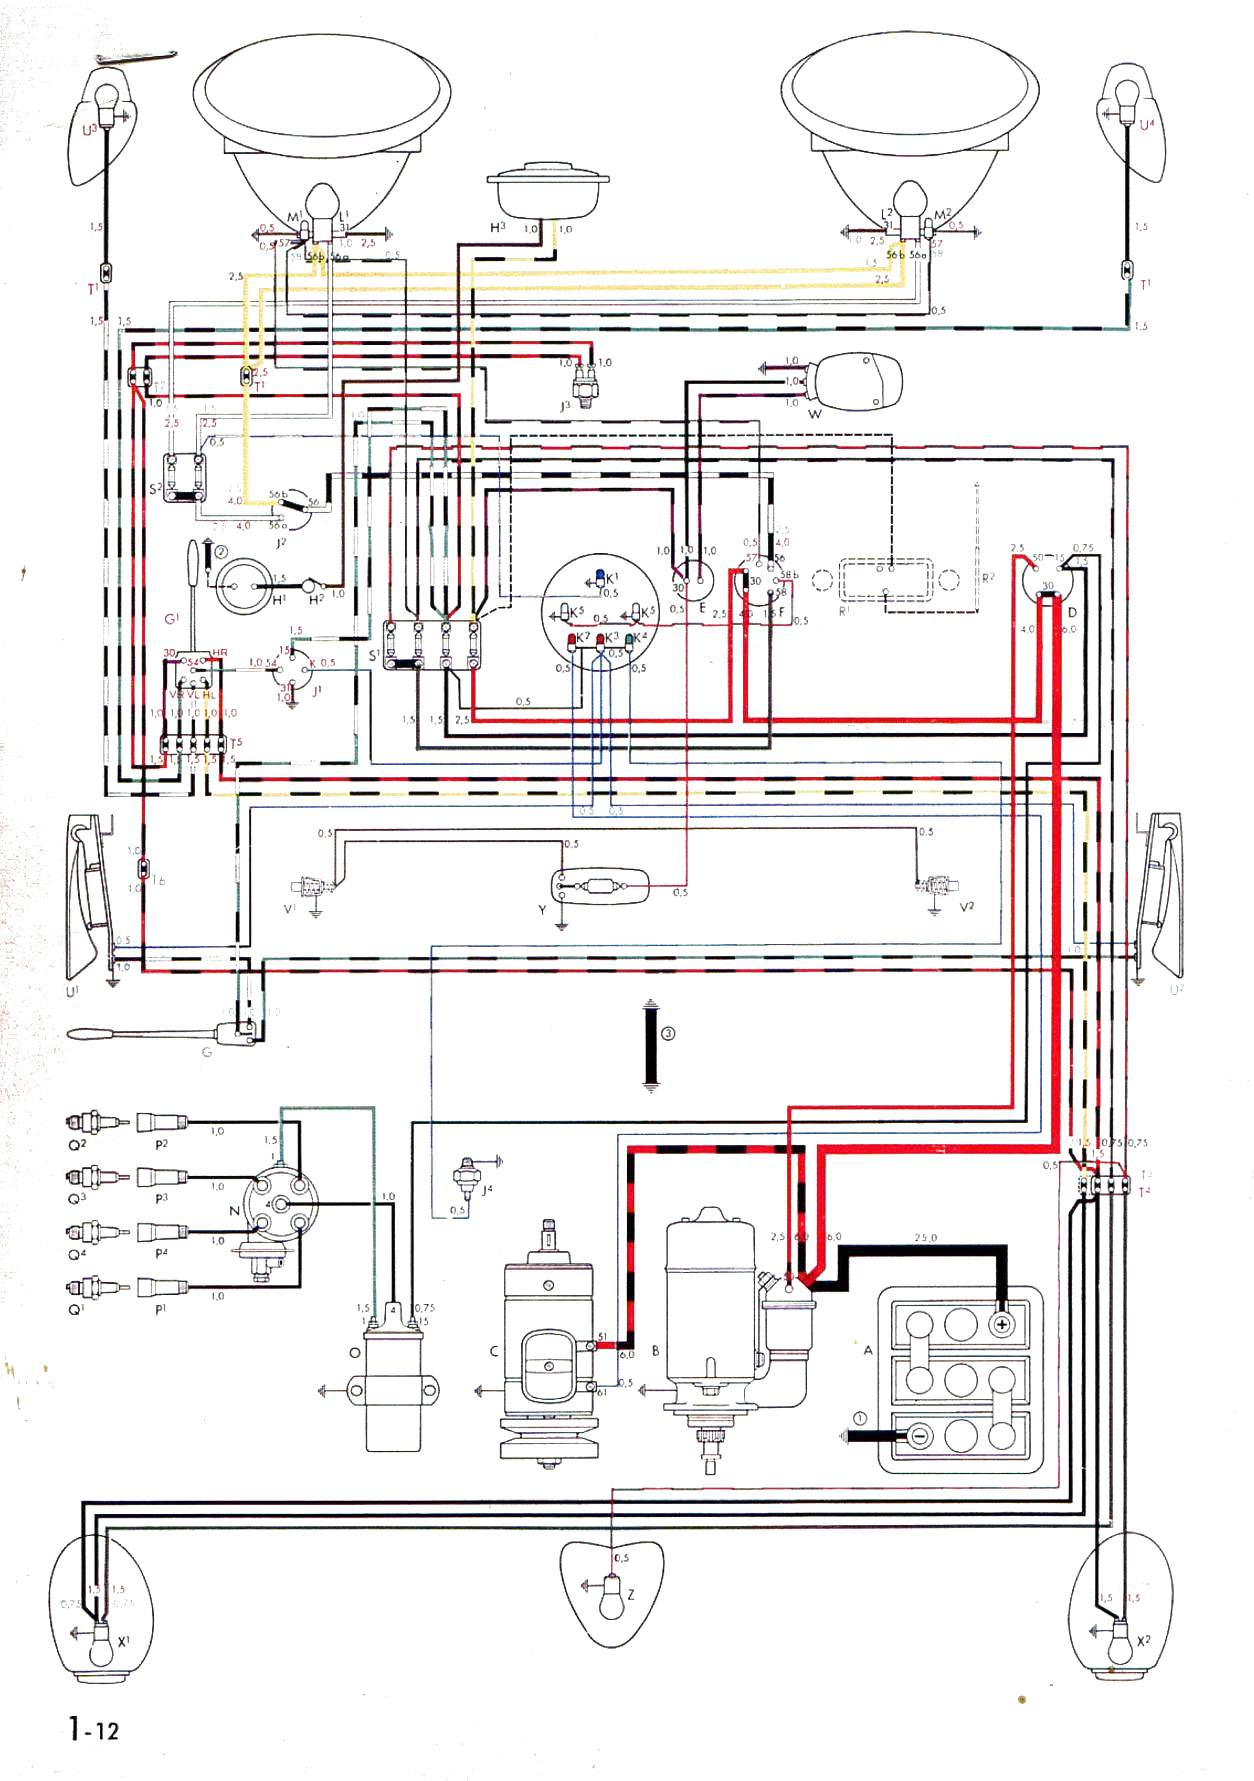 bug 55 57 vintagebus com vw bus (and other) wiring diagrams vw beetle wiring harness routing at mifinder.co